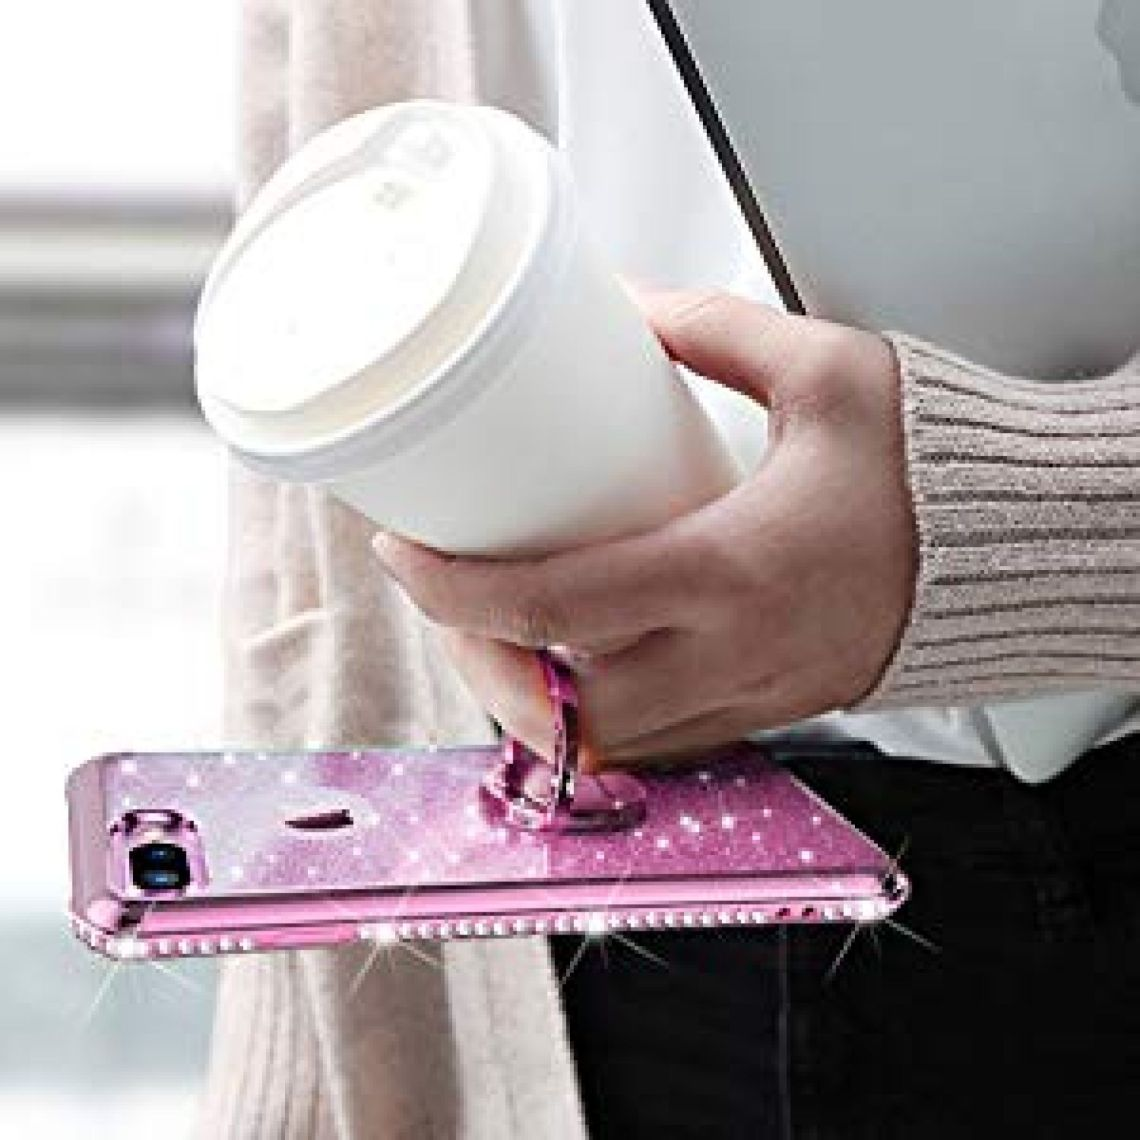 Amazon.com: OCYCLONE Case for iPhone 8 Plus/iPhone 7 Plus, Cute for Girls Glitter Bling Diamond Rhinestone Bumper with Ring Kickstand Phone Case for iPhone 8 Plus/iPhone 7 Plus for Women Girl - Sakura Pink: Cell Phones & Accessories